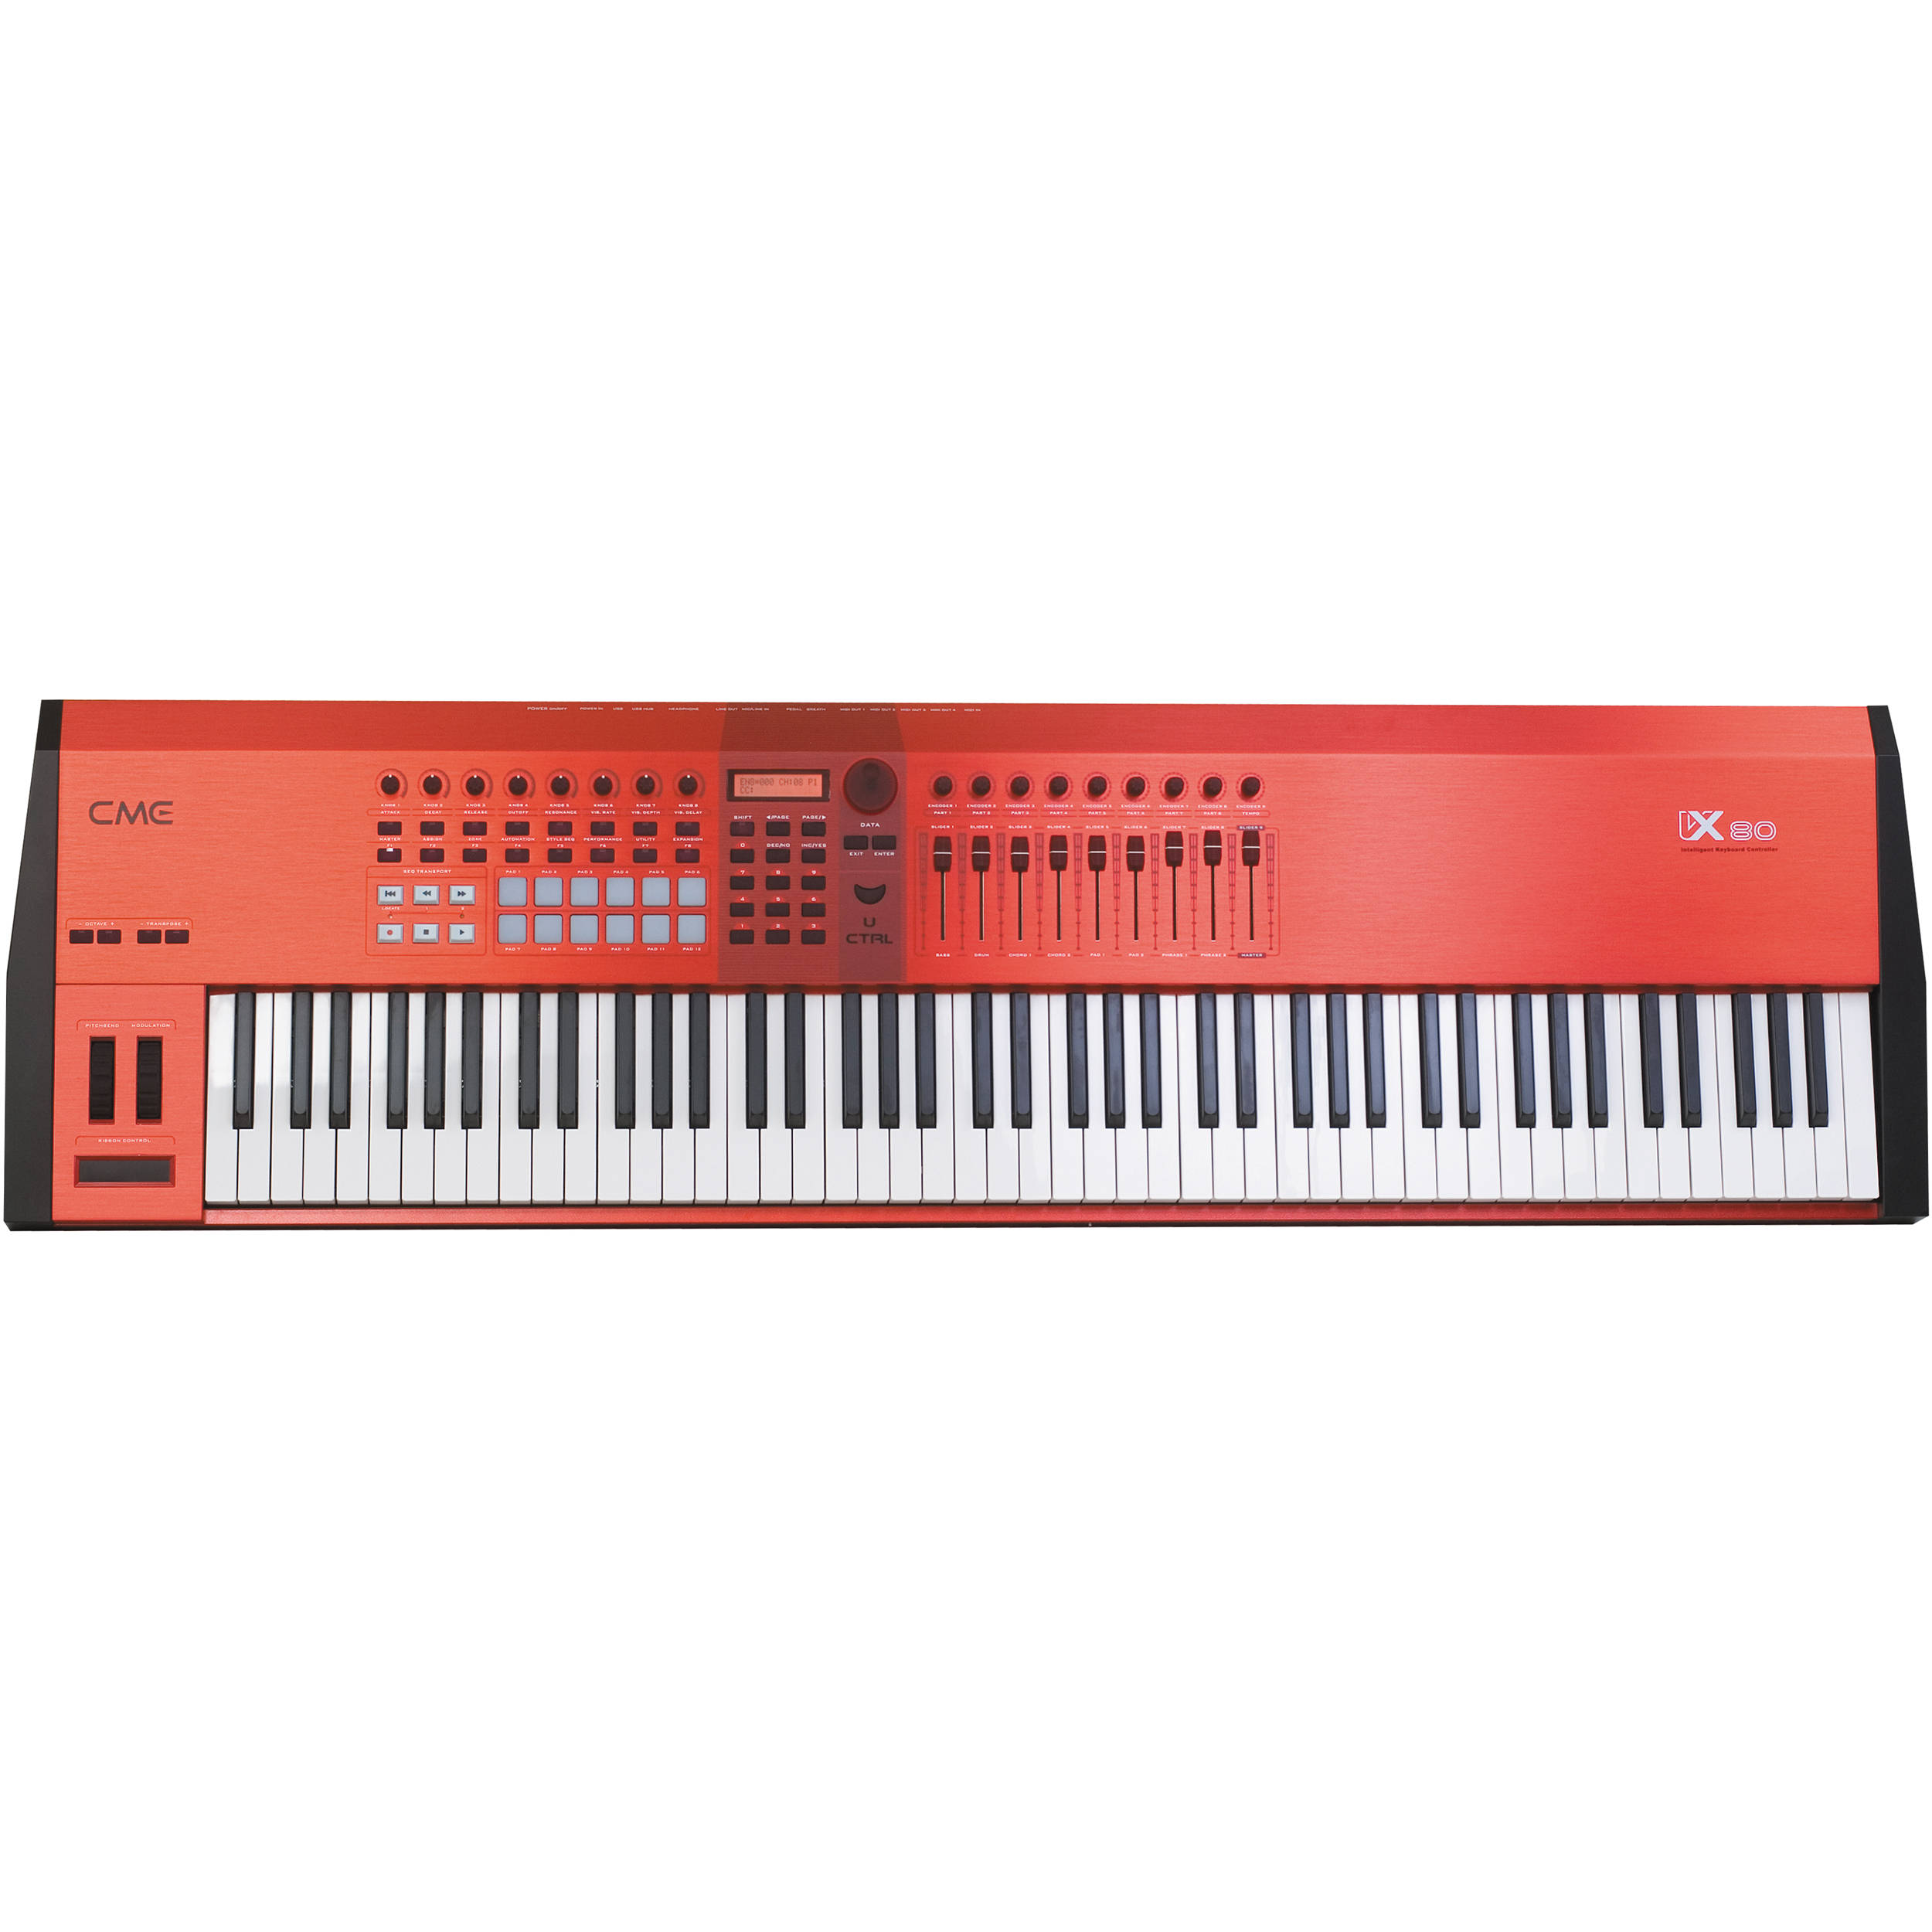 Cme Vx70 Keyboard Controller With Motorized Faders And Usb